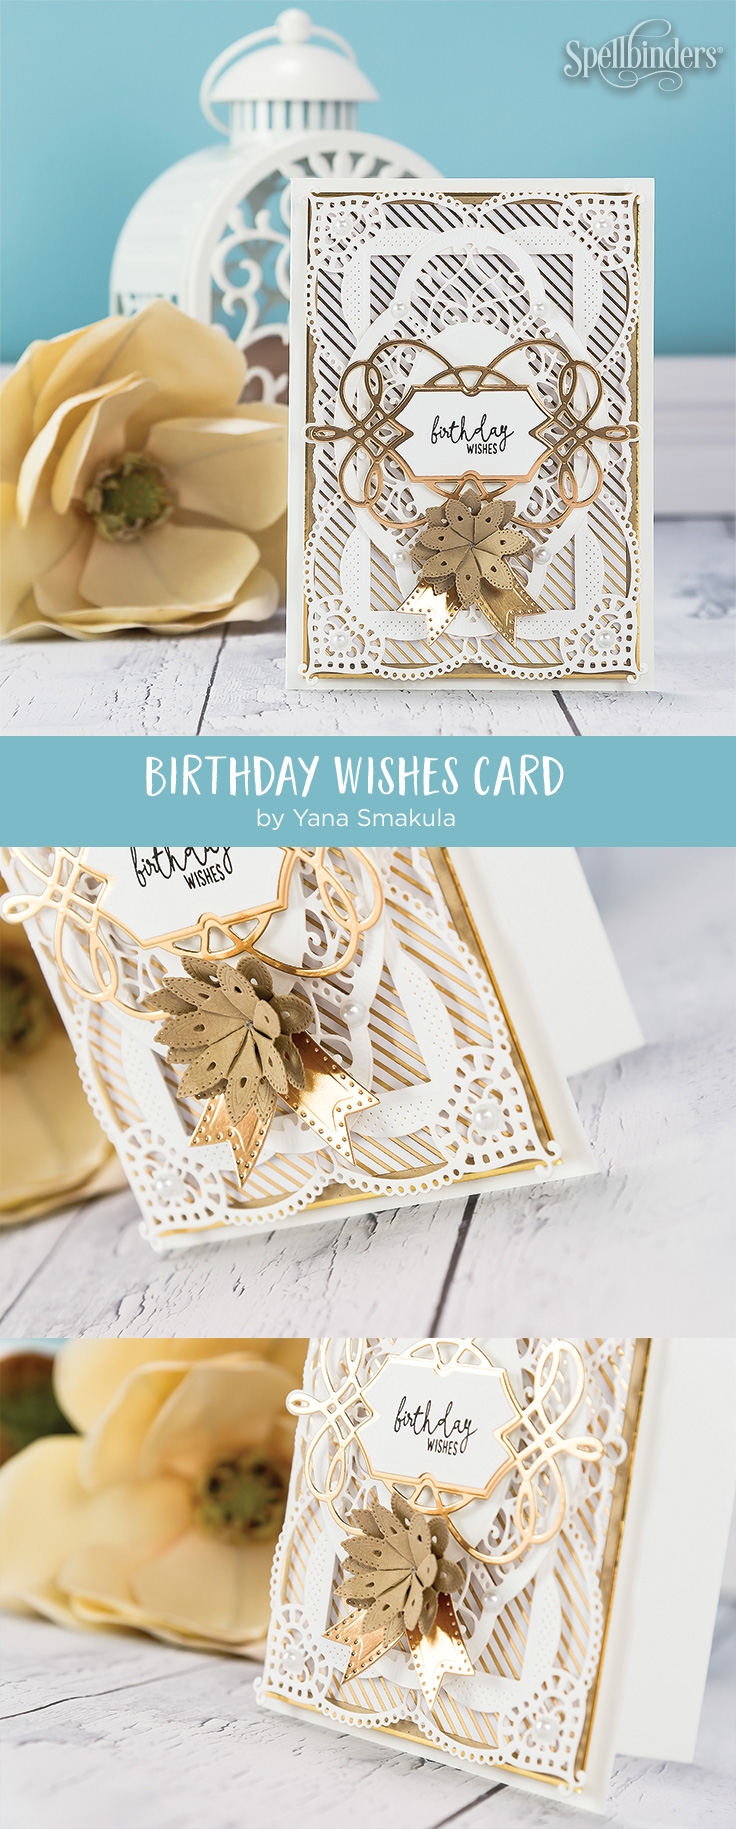 Cardmaking Inspiration | Birthday Wishes Card created by Yana Smakula for Spellbinders. Using S4-819 LILLY PEARL FLAT FOLD FLOWER/BORDER, S4-820 Vintage Pierced Banners, S5-329 HANNAH ELISE LAYERING FRAME SMALL, S6-130 CORALENE'S CHEMISE LAYERING FRAME LARGE dies by Becca Feeken #diecutting #spellbinders #cardmaking